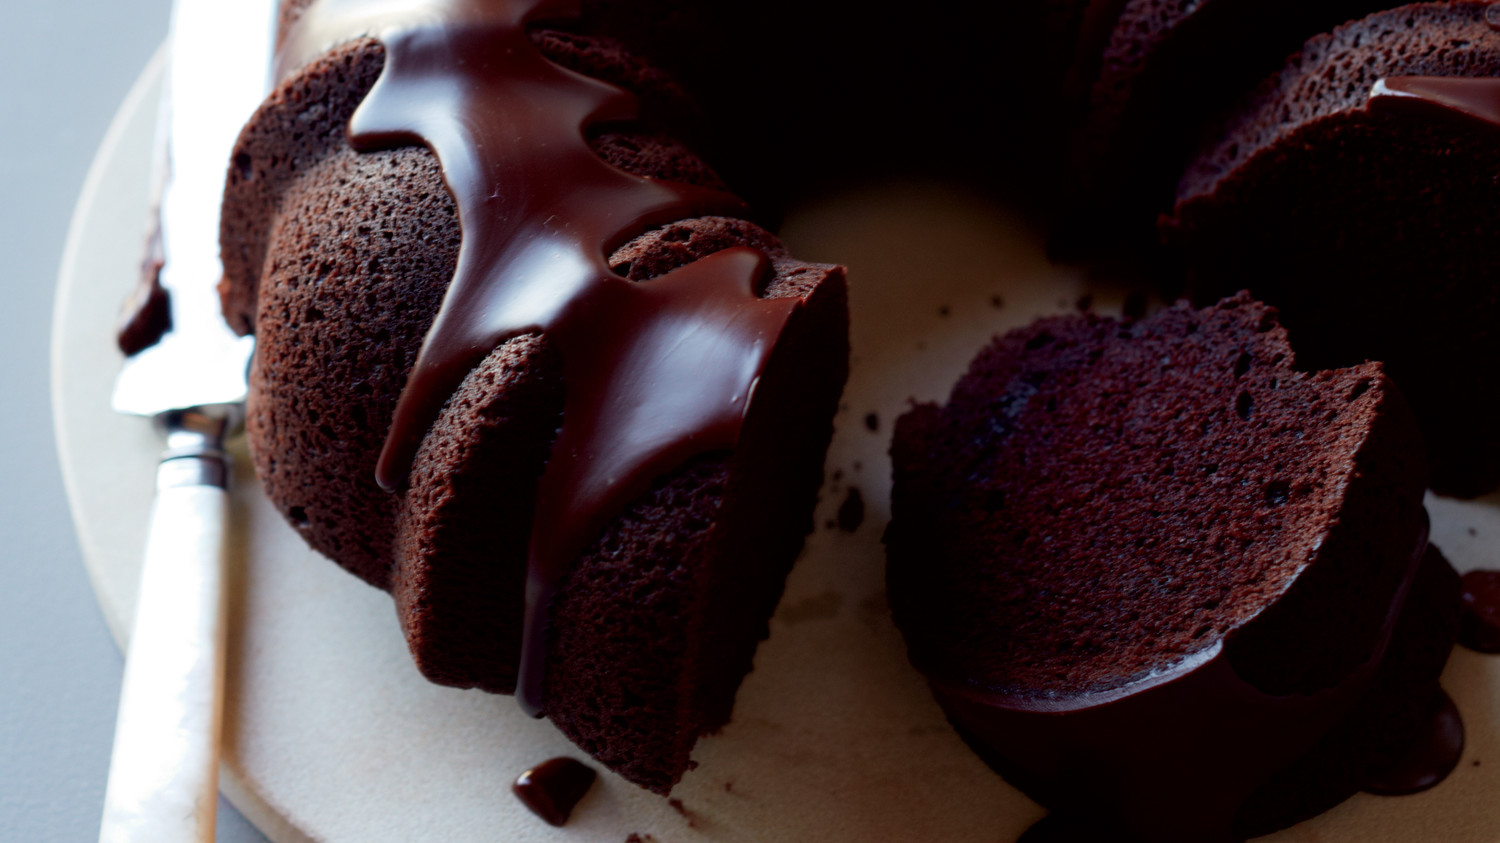 Chocolate Lava Cake Recipe Bundt Pan